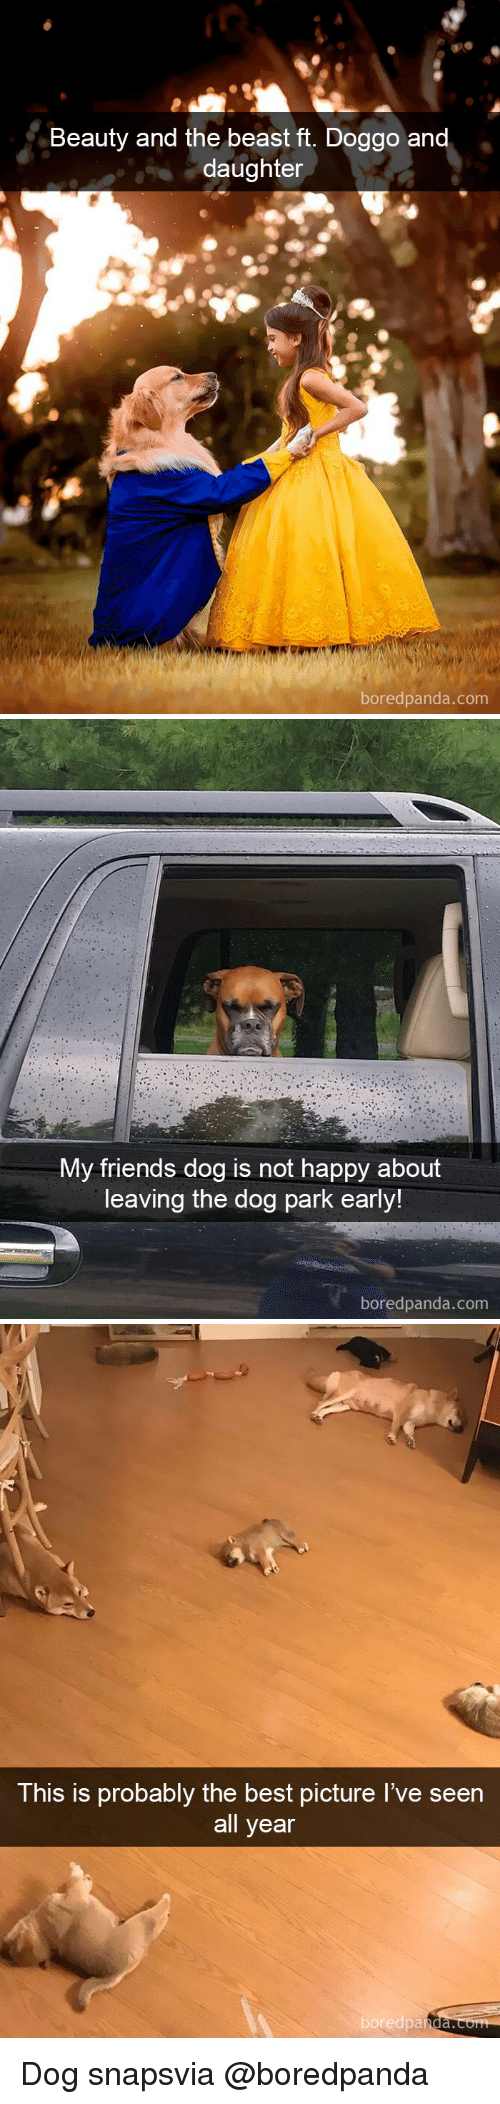 the beast: Beauty and the beast ft. Doggo an  daughter  boredpanda.com   My friends dog is not happy about  leaving the dog park early!  boredpanda.com   This is probably the best picture I've seen  all year  boredpa  nda. Dog snapsvia @boredpanda